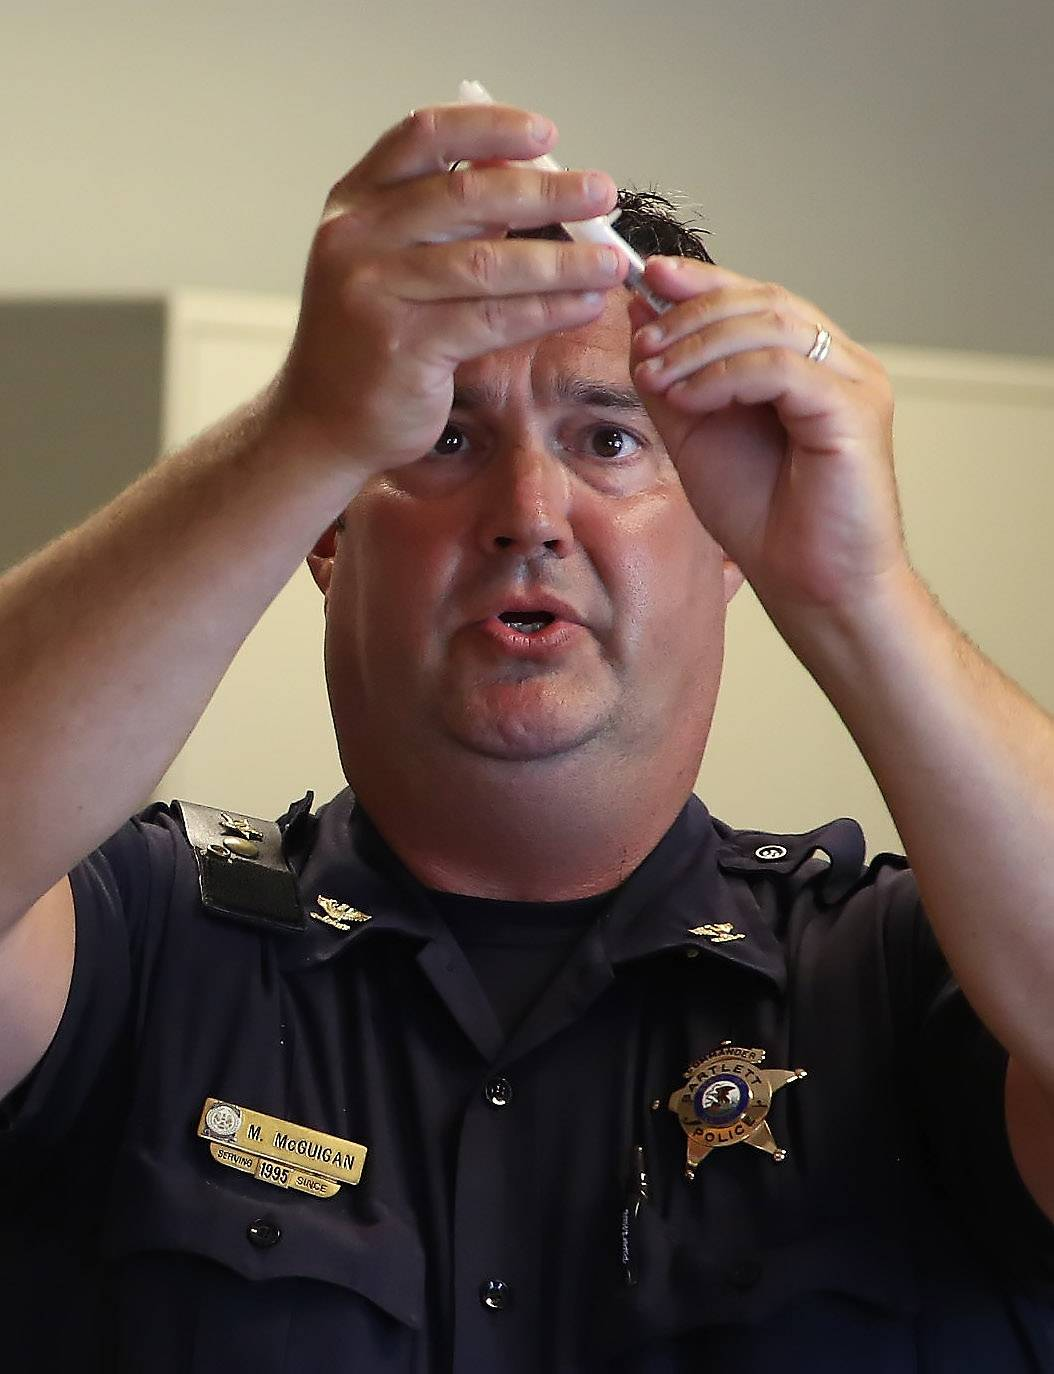 Bartlett police Cmdr. Michael McGuigan demonstrates the naloxone inhaler while training Lake County police officers in the use of the drug, which counteracts the effects of a heroin overdose. Lake County authorities hope to equip every police officer in the county with the spray by Sept. 1.